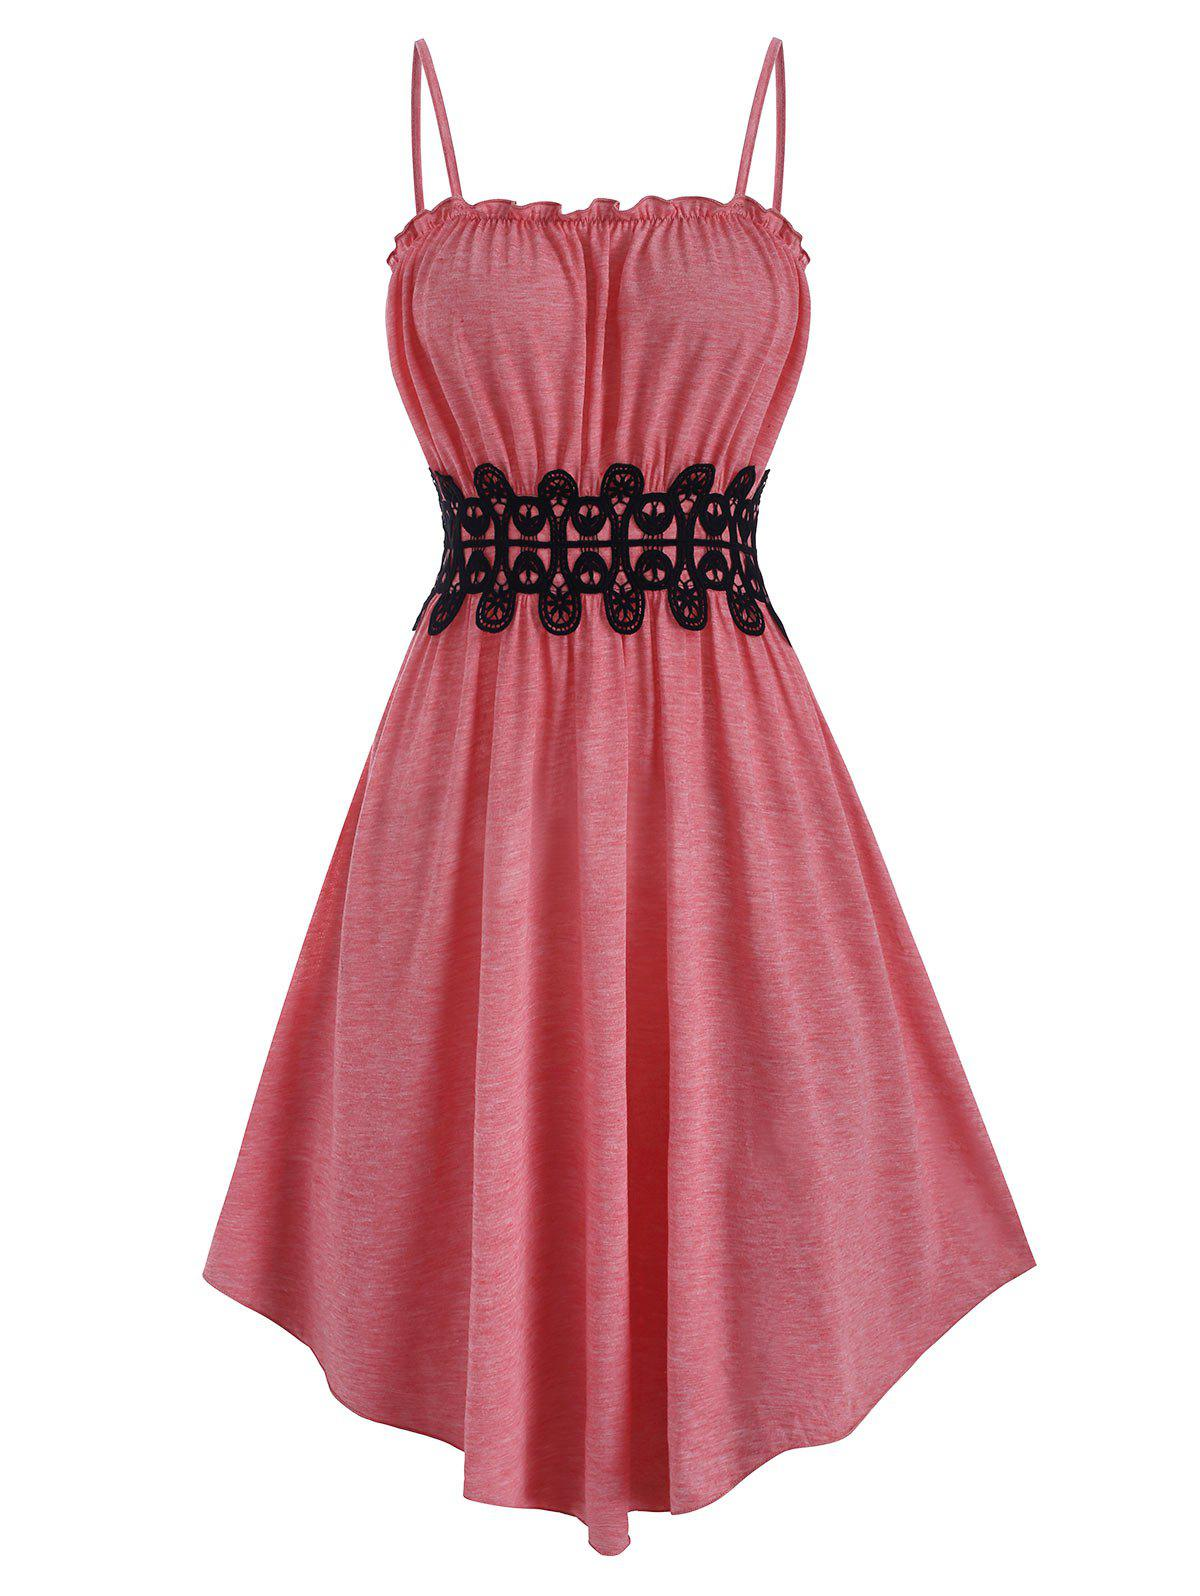 Frilled Lace Applique Cami Dress - LIGHT PINK XL